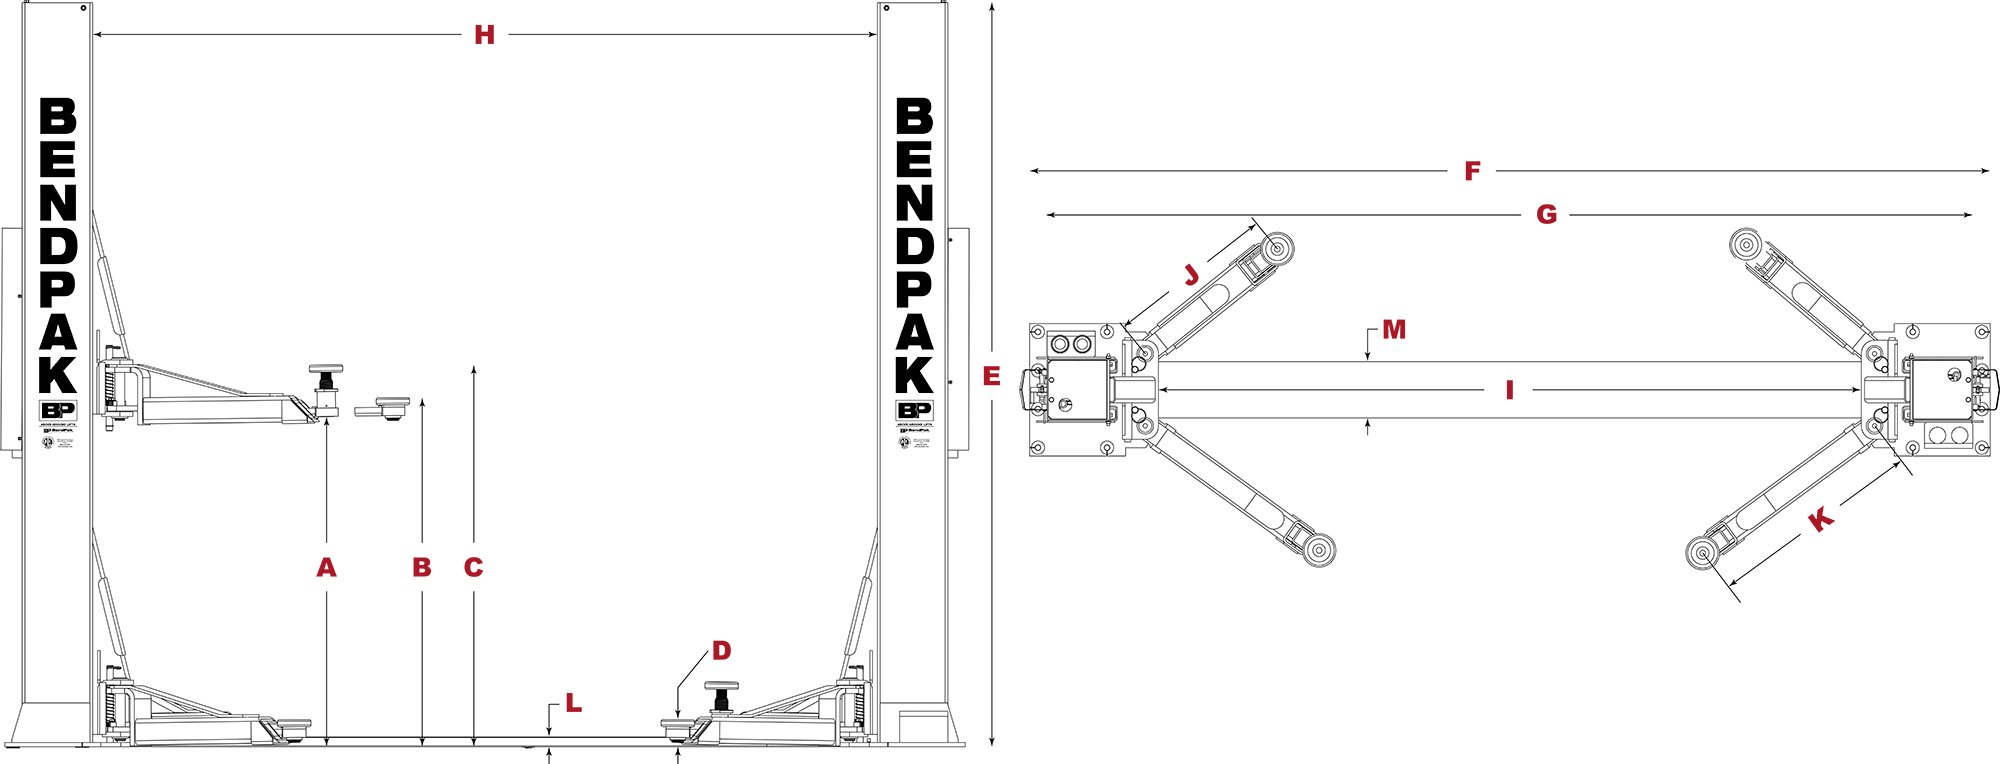 bendpak-xpr-9s-floorplate-two-post-lifts-specifications-diagram.jpg